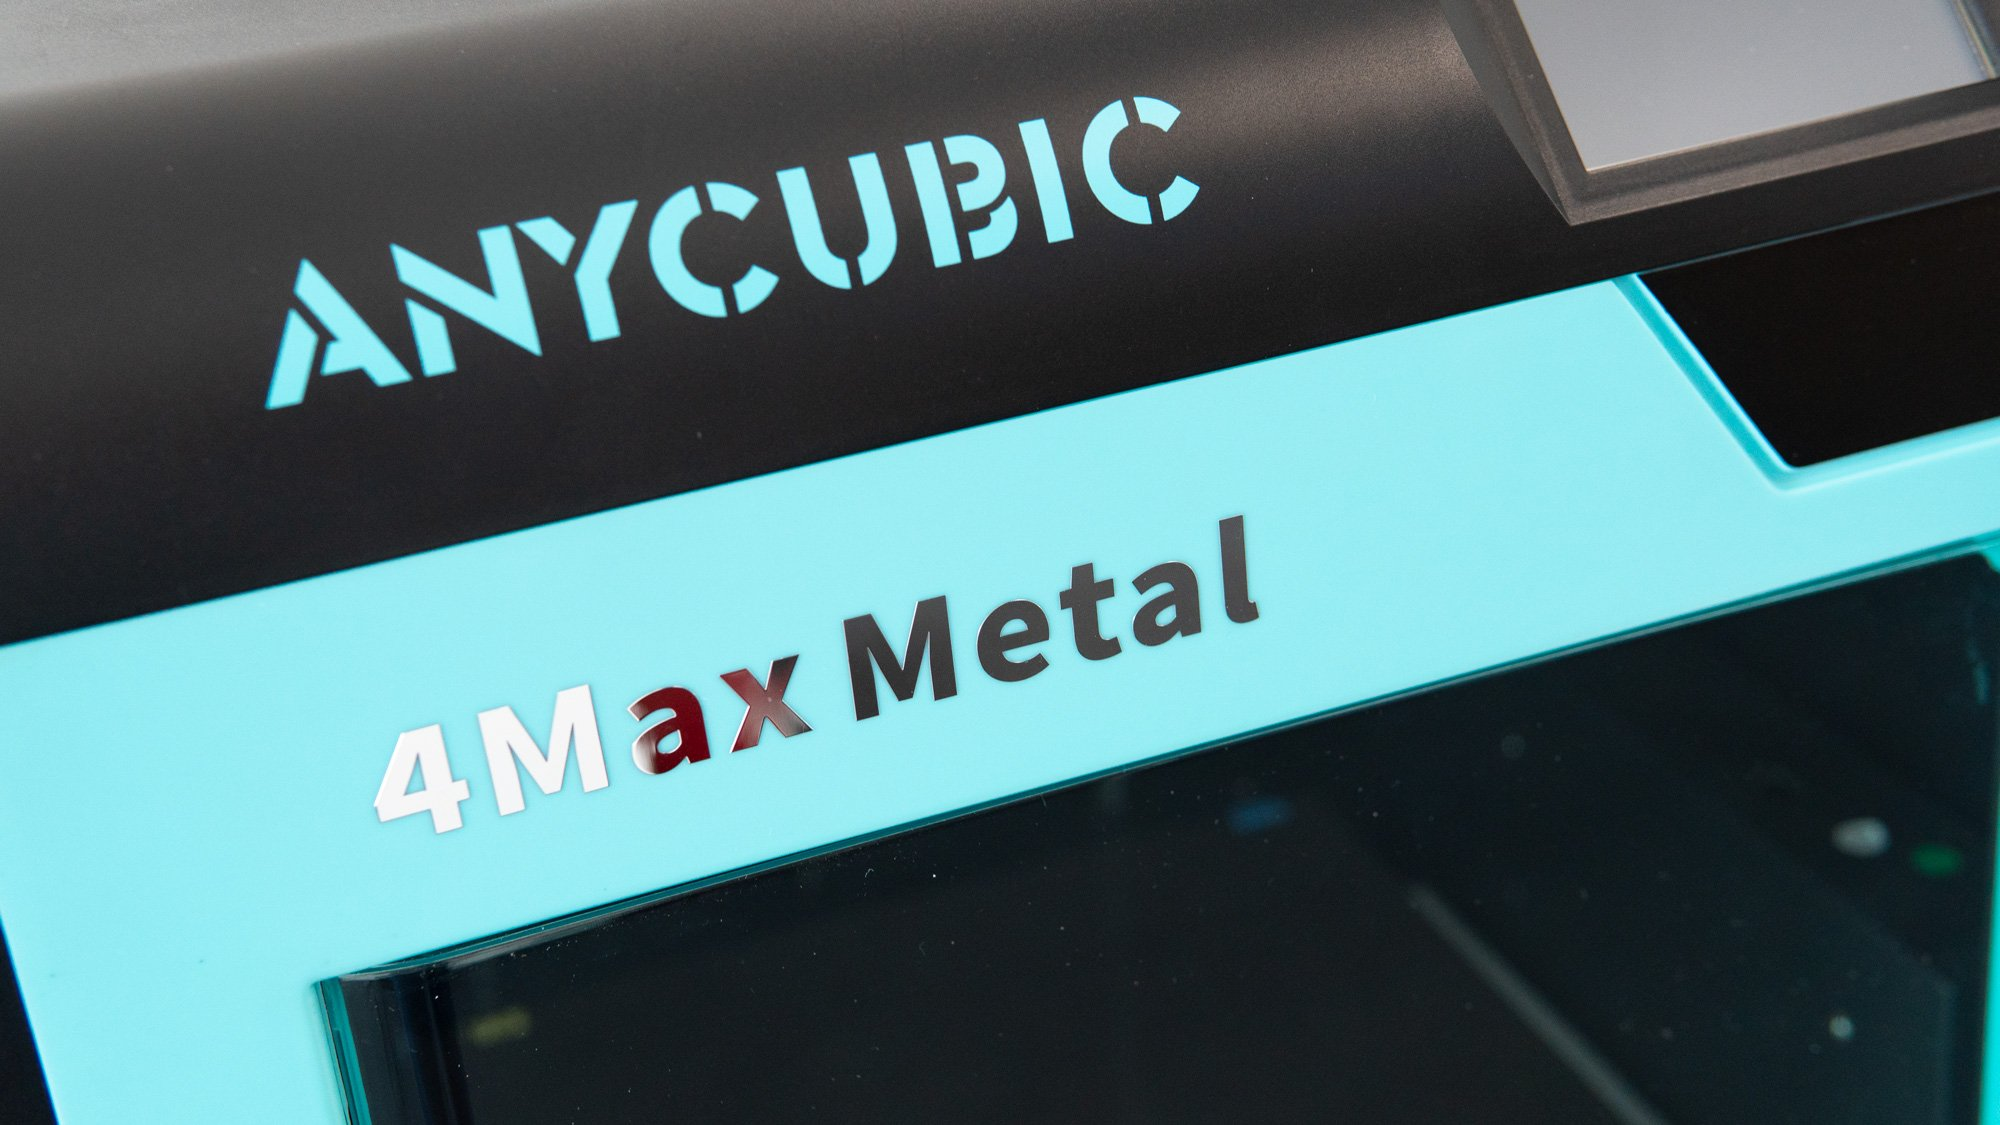 Anycubic 4Max Metal: Specs, Price, Release & Reviews | All3DP